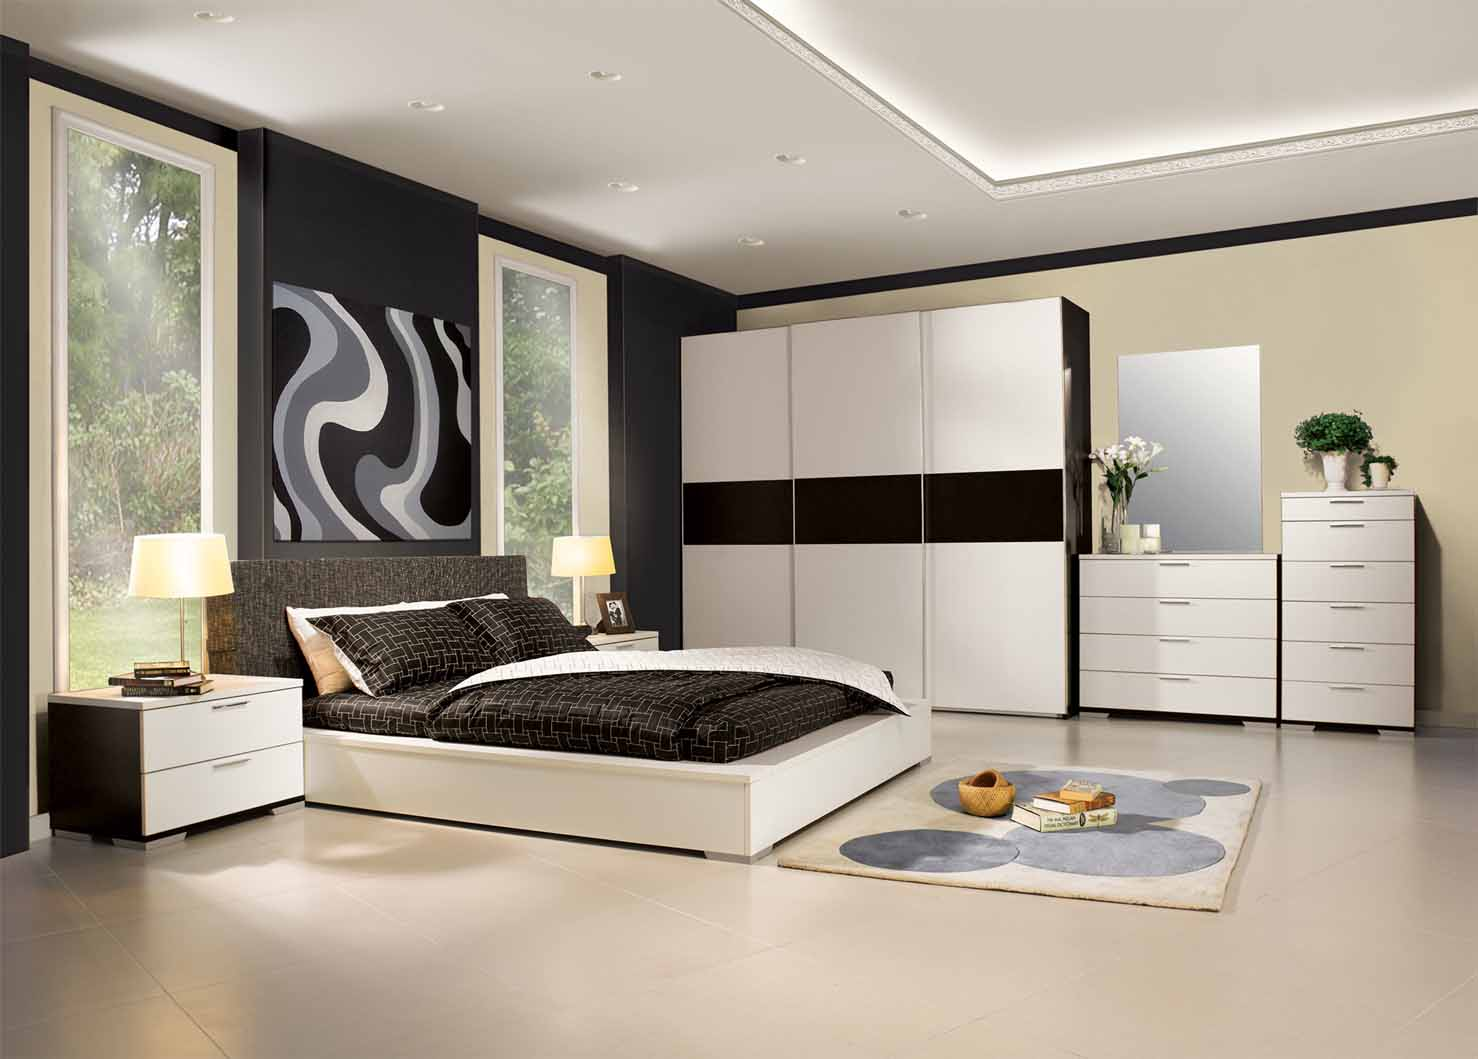 Awesome bedrooms ideas pictures 2014 decorating bedrooms for Bedroom picture ideas